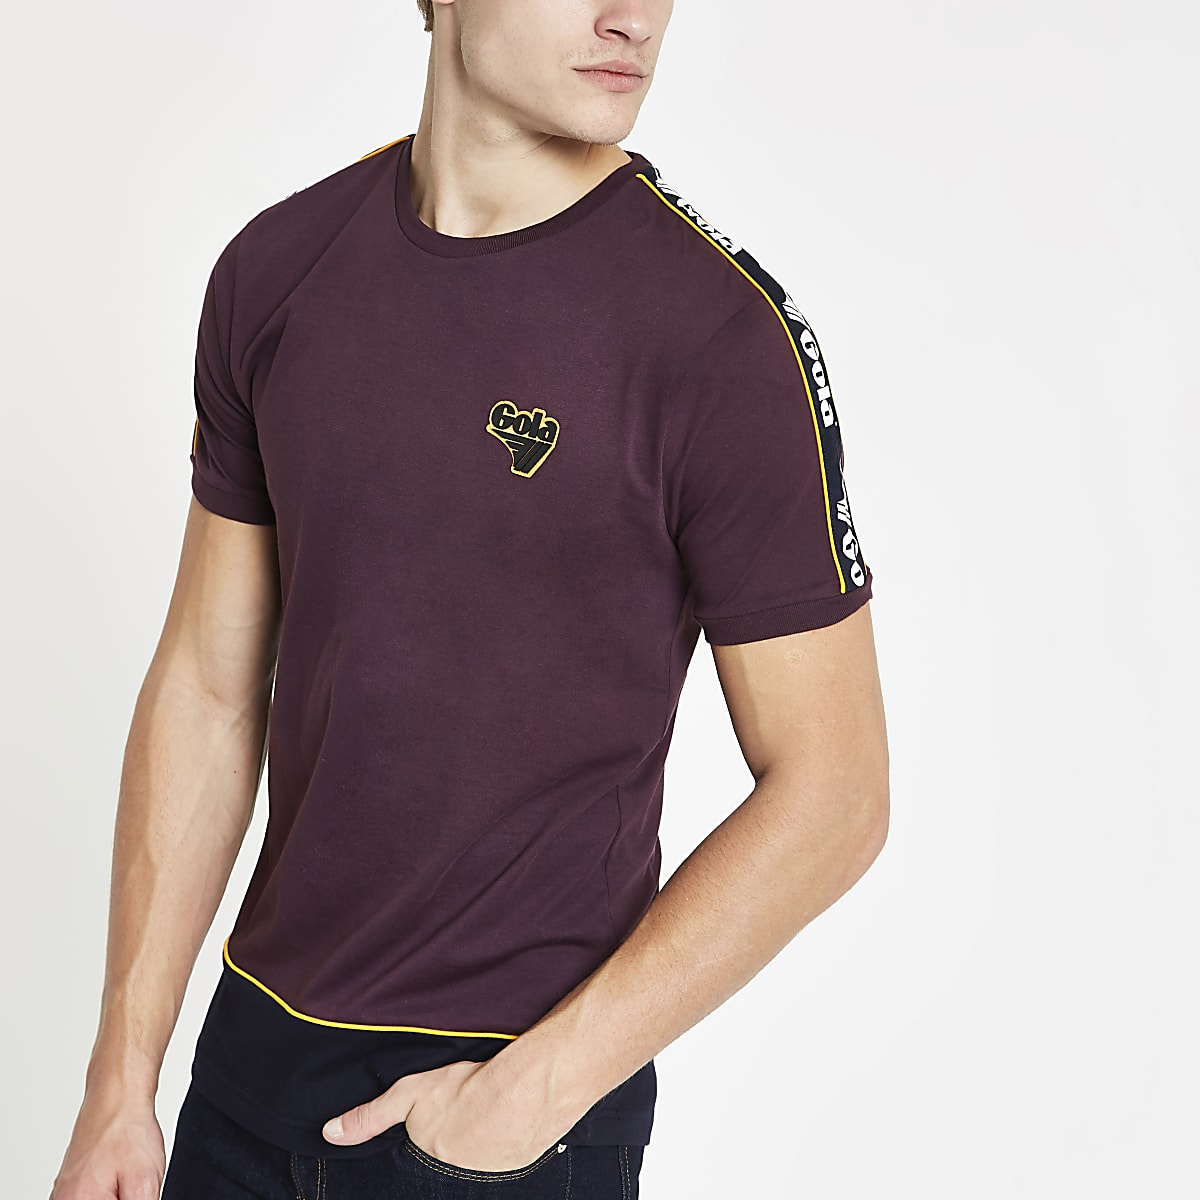 Gola burgundy tape crew neck T-shirt